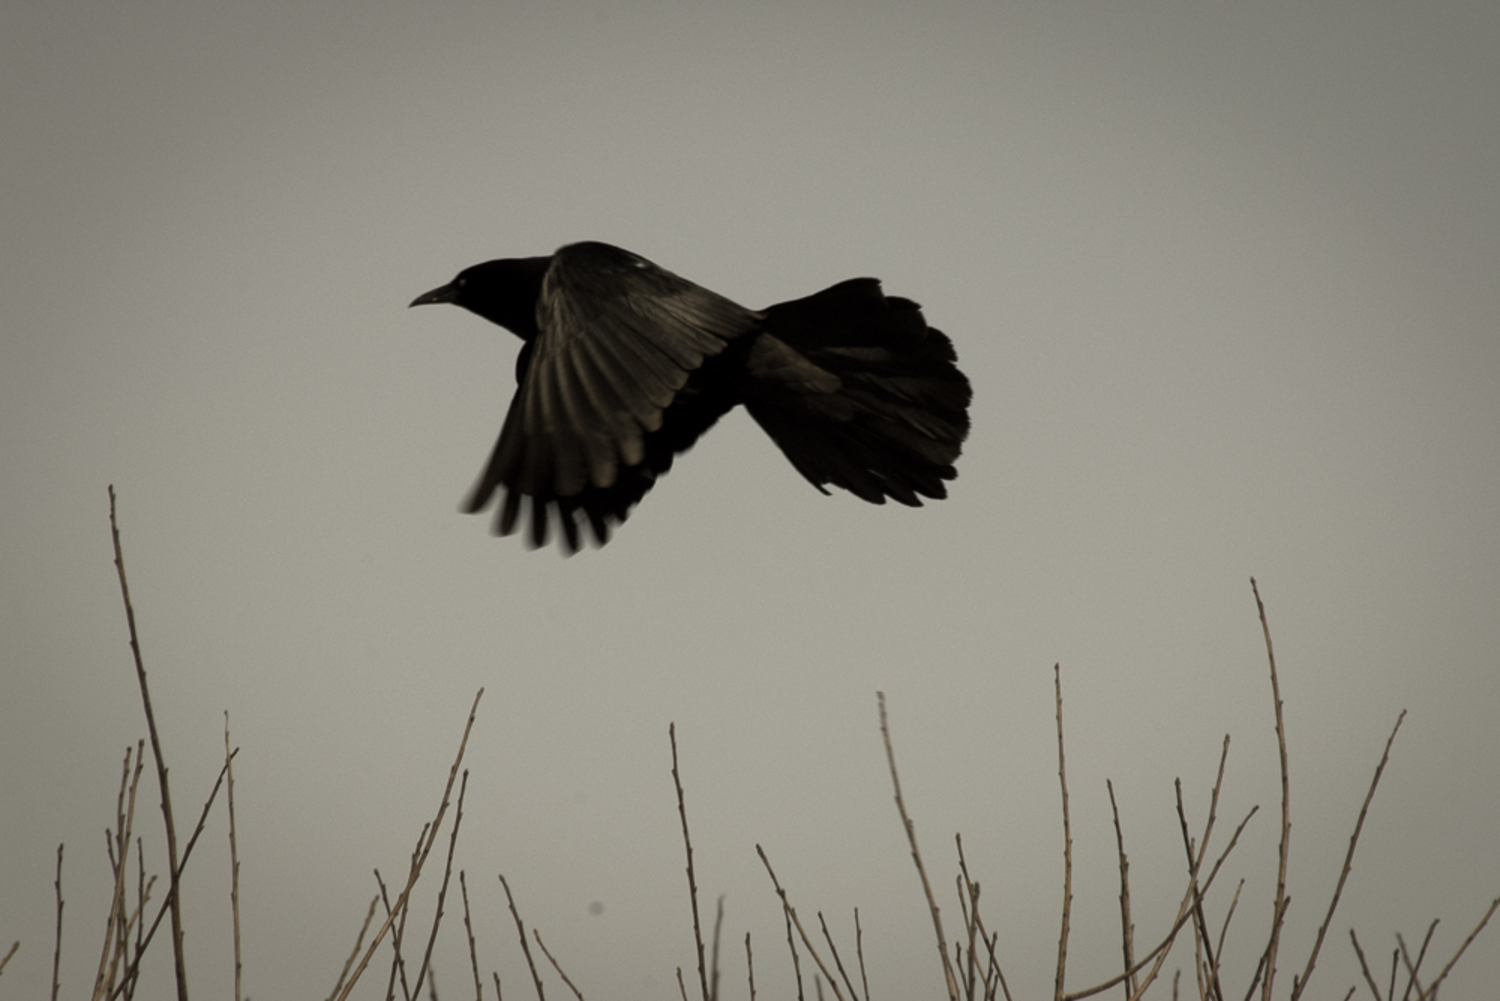 Quothe the Grackle